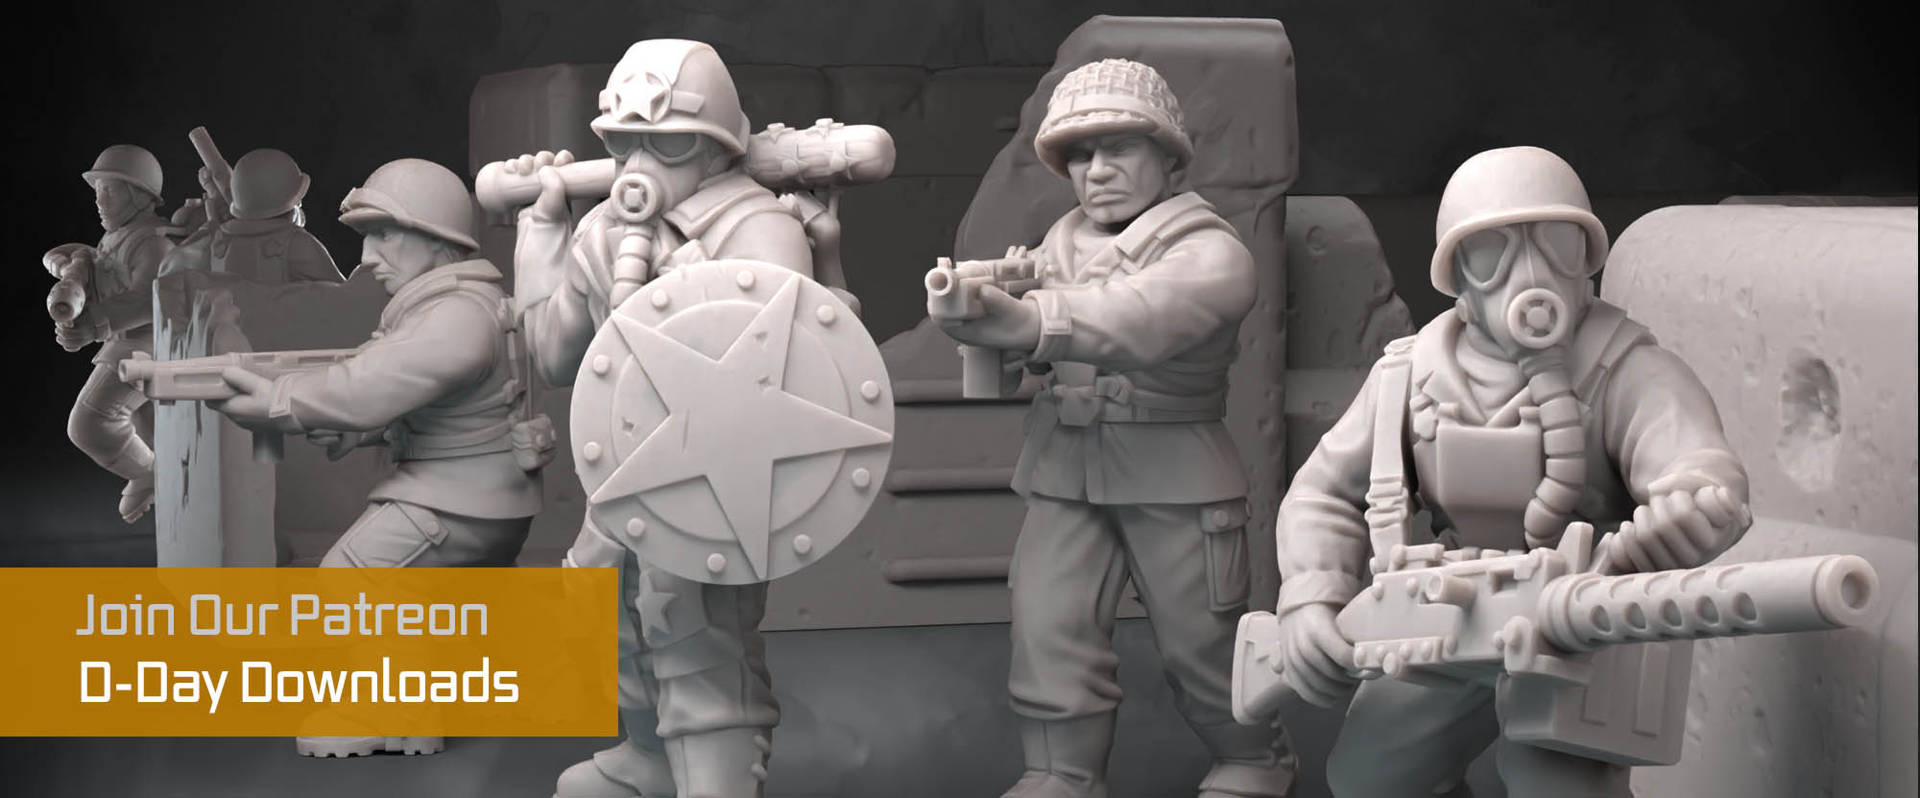 D-Day Miniatures for Home 3d Printing On the Anvil Digital Forge Patreon